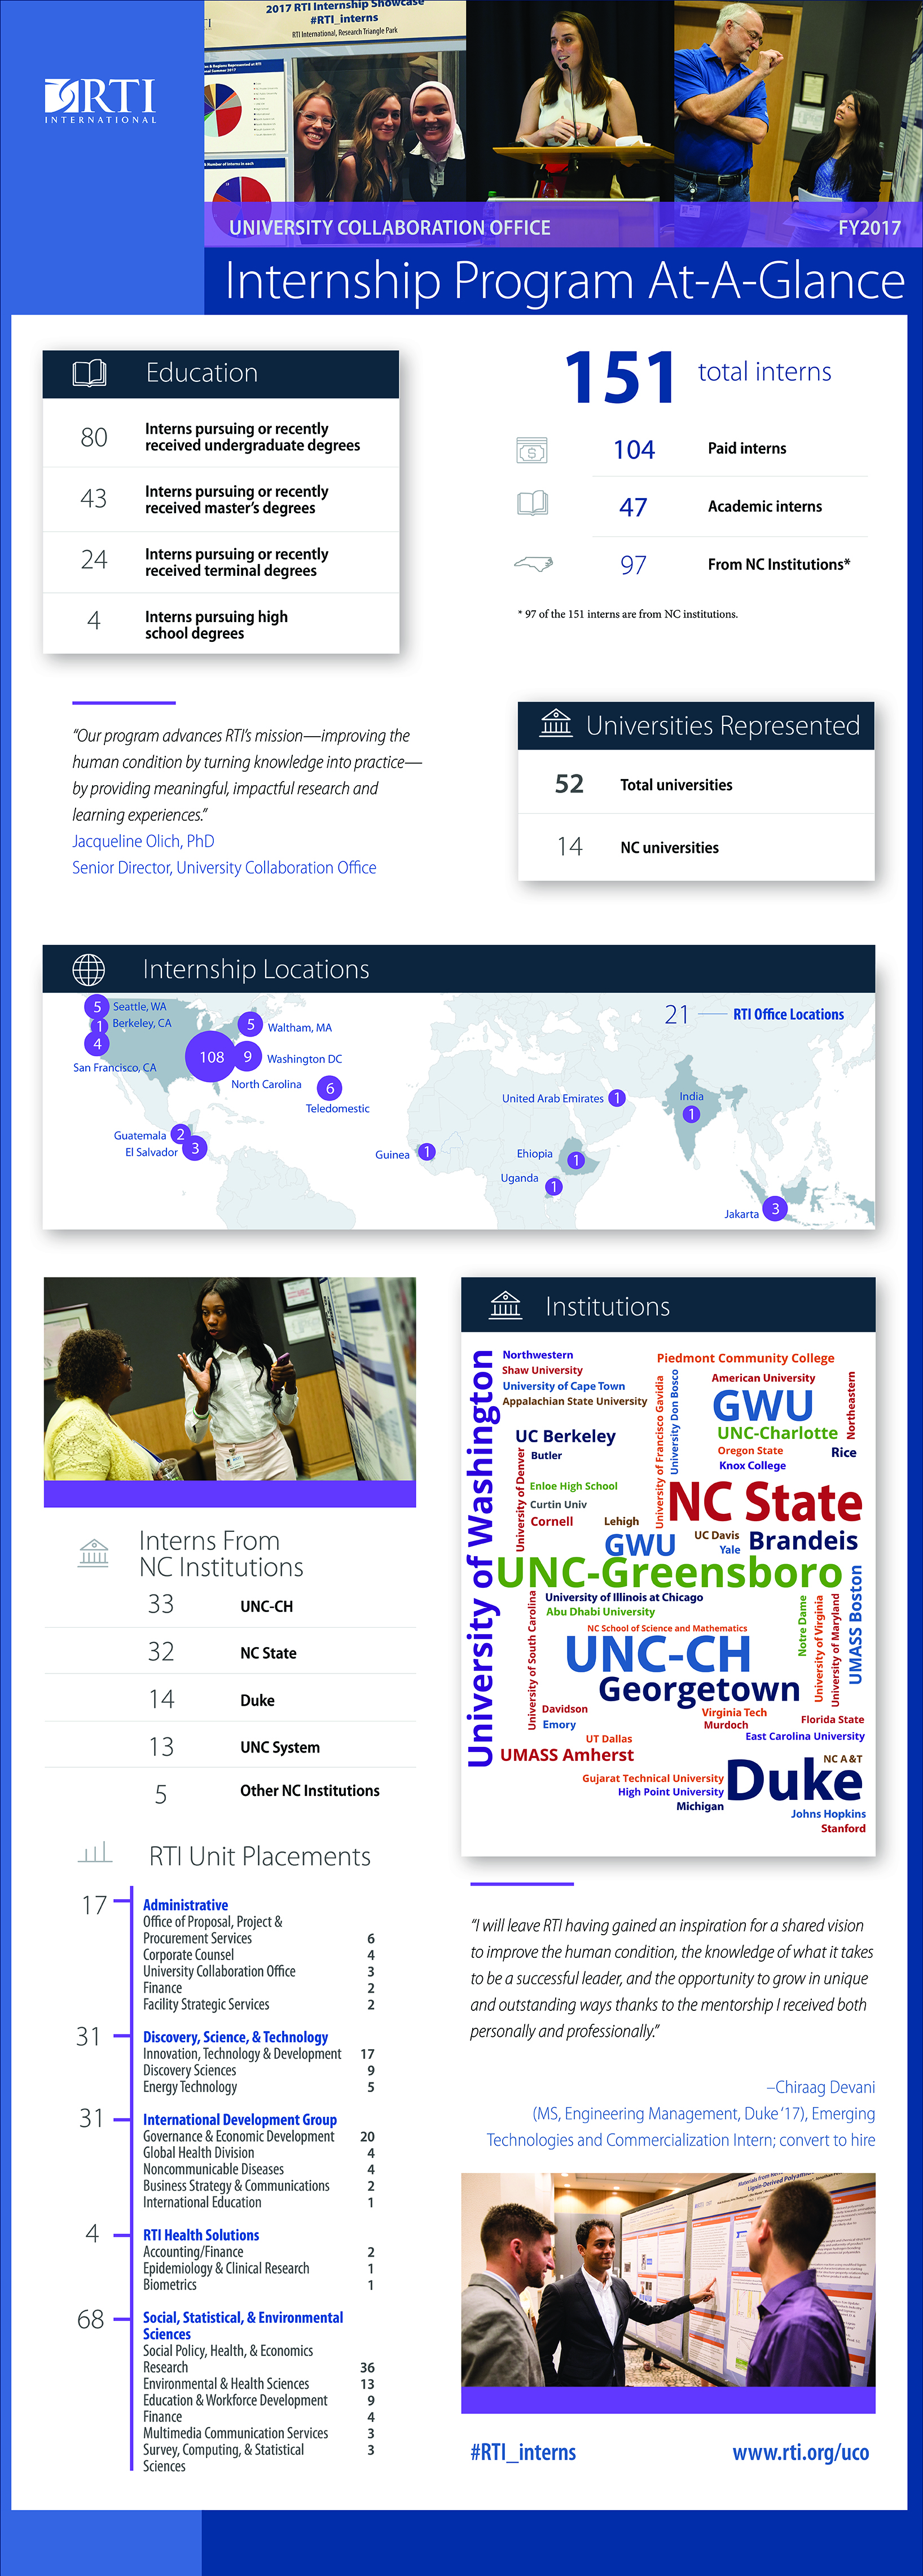 This infographic describes the number of interns in 2017, where they are in their education and where they are from.